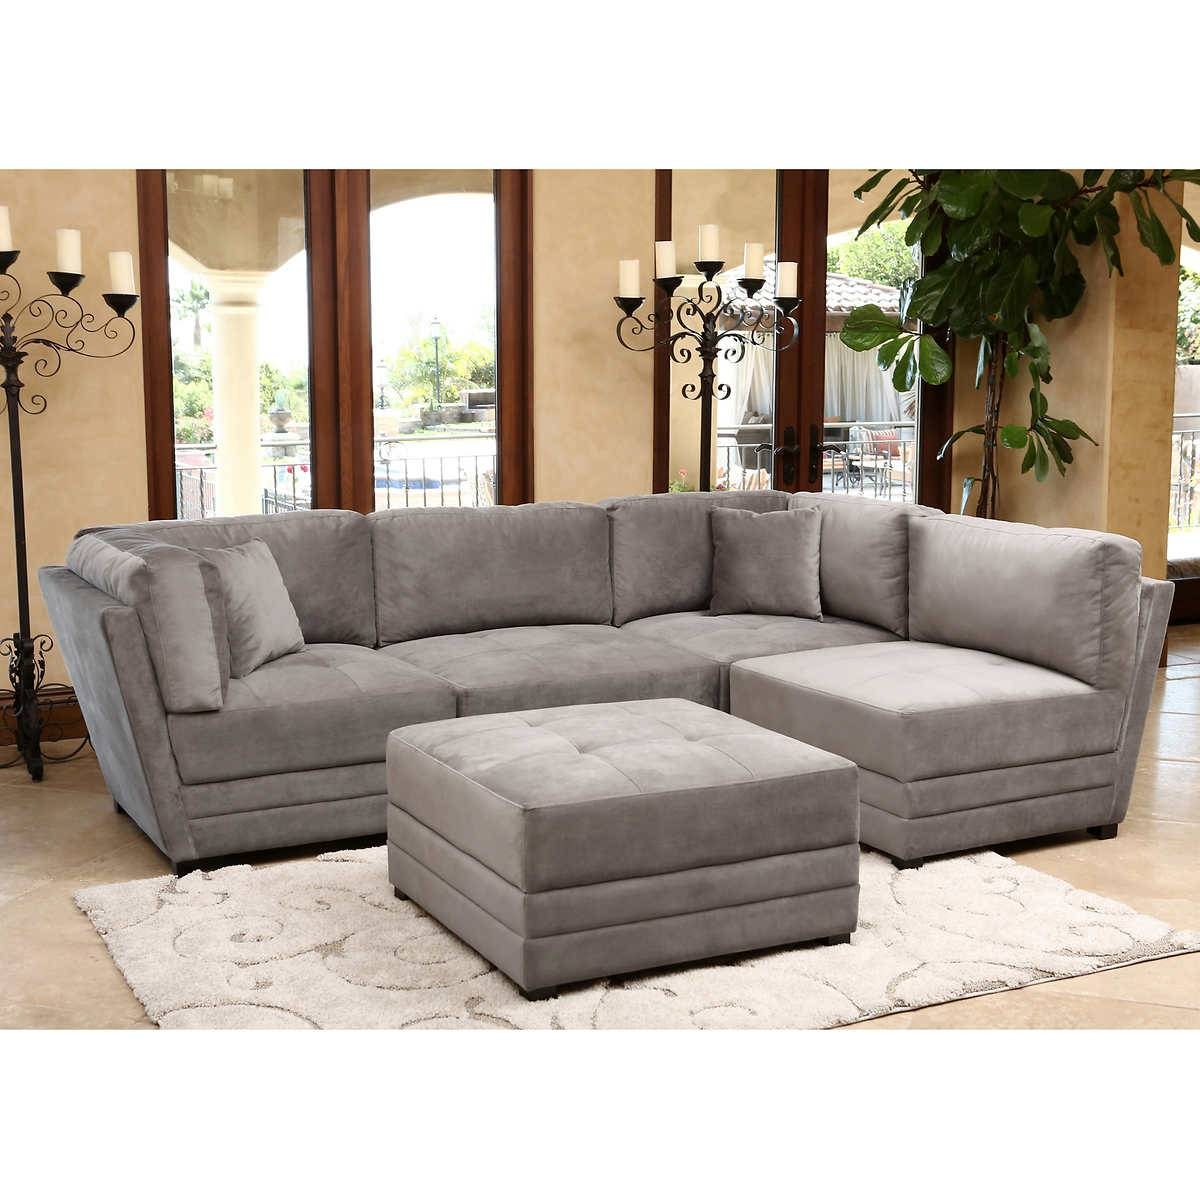 6 Piece Sectional Couch Cover. Gallery Pictures For Great within 6 Piece Sectional Sofas Couches (Image 2 of 15)